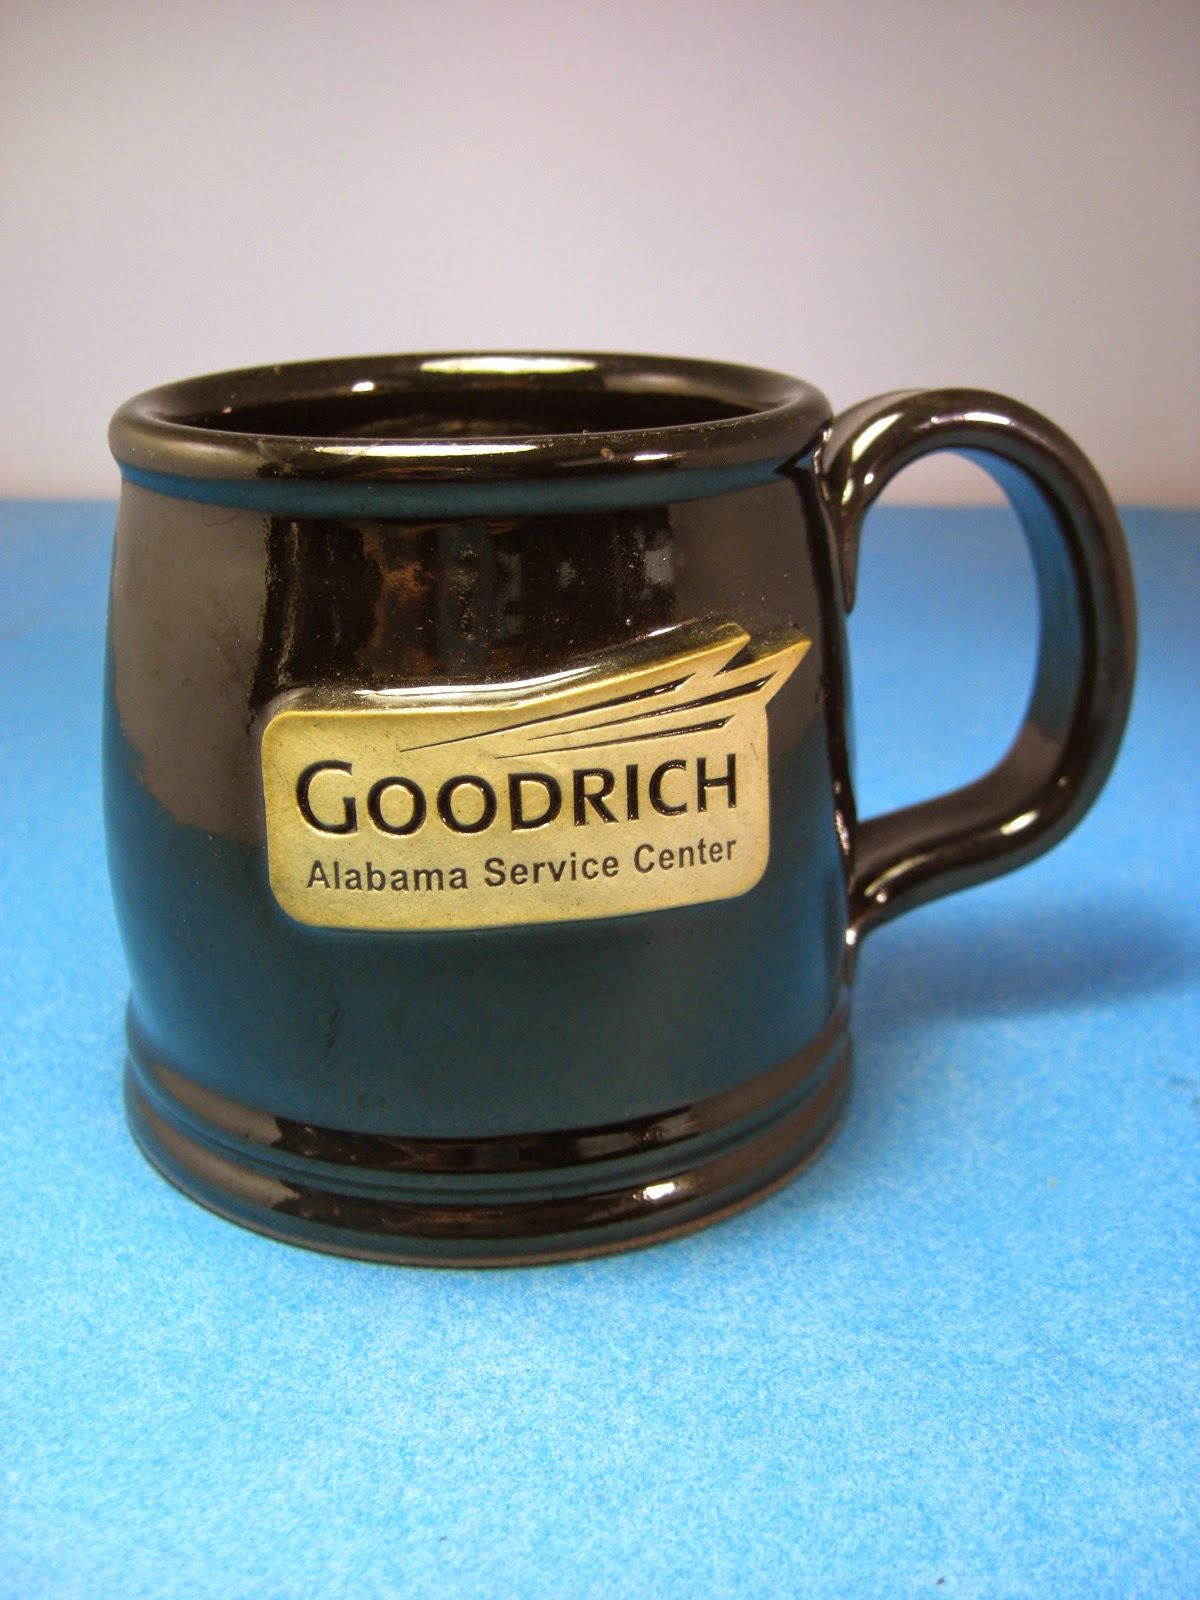 http://bargaincart.ecrater.com/p/20277696/goodrich-alabama-pottery-stoare-coffee?keywords=Goodrich